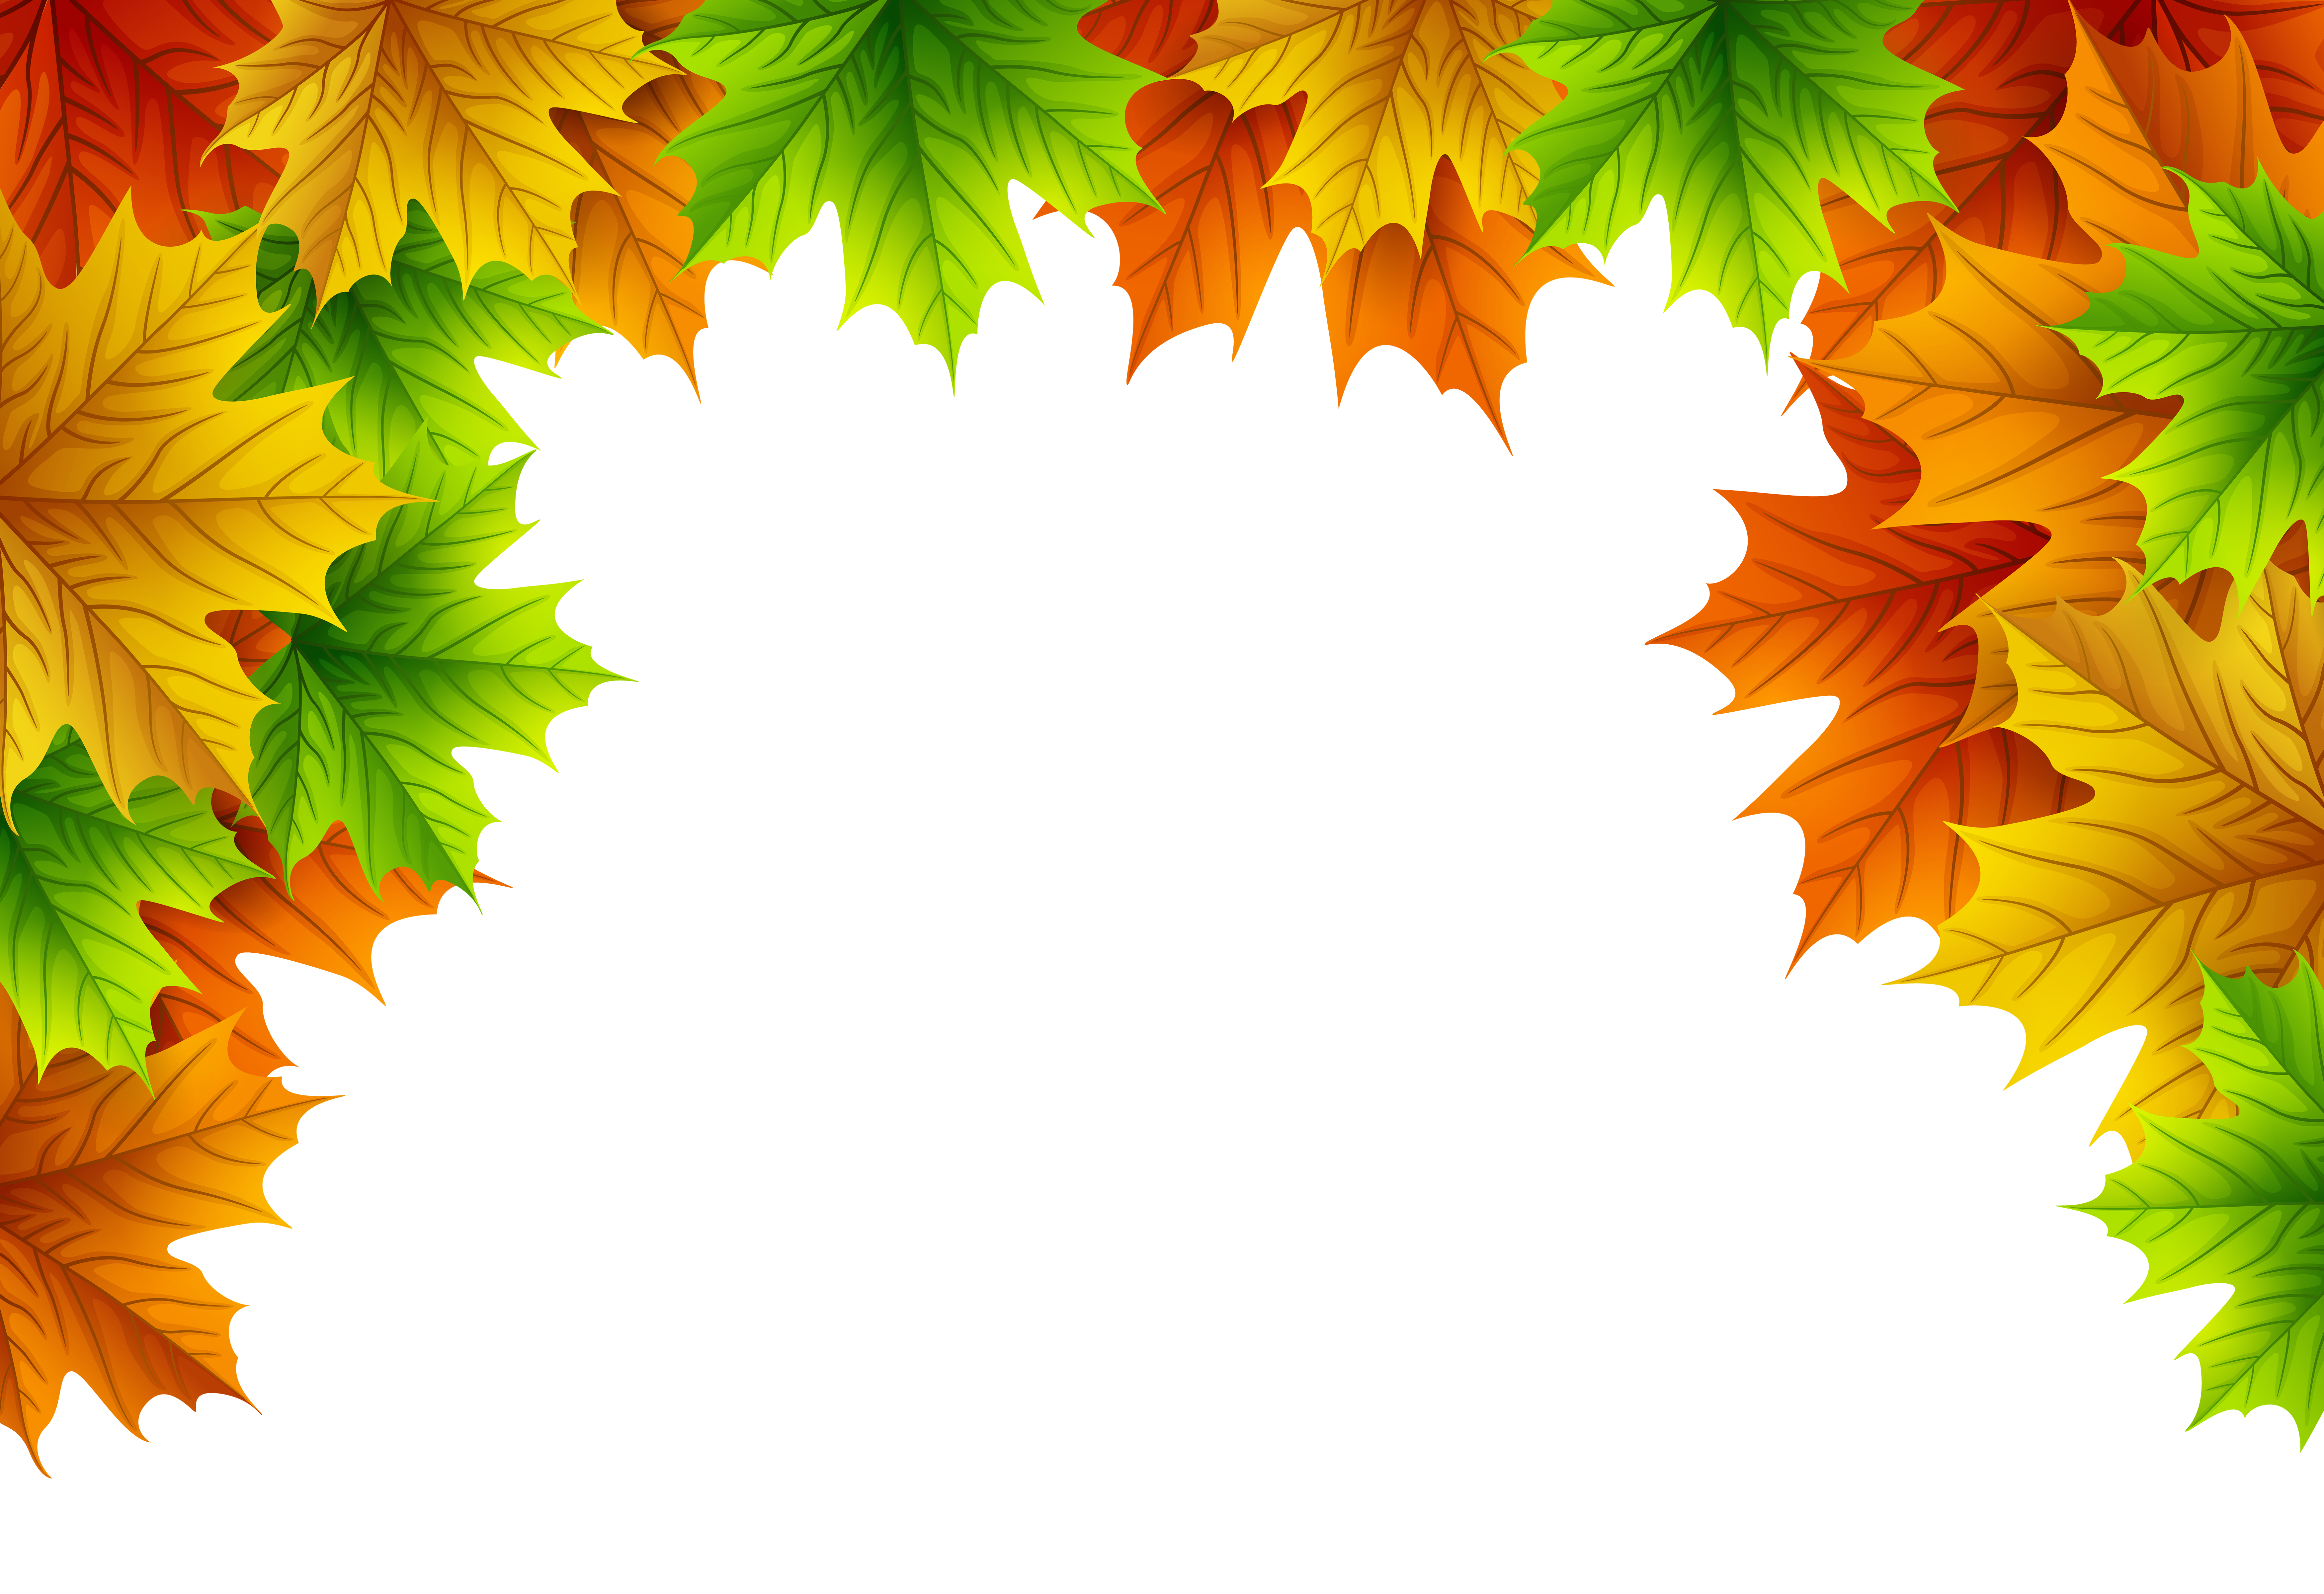 Fall Leaves Border Png & Free Fall Leaves Border.png ...